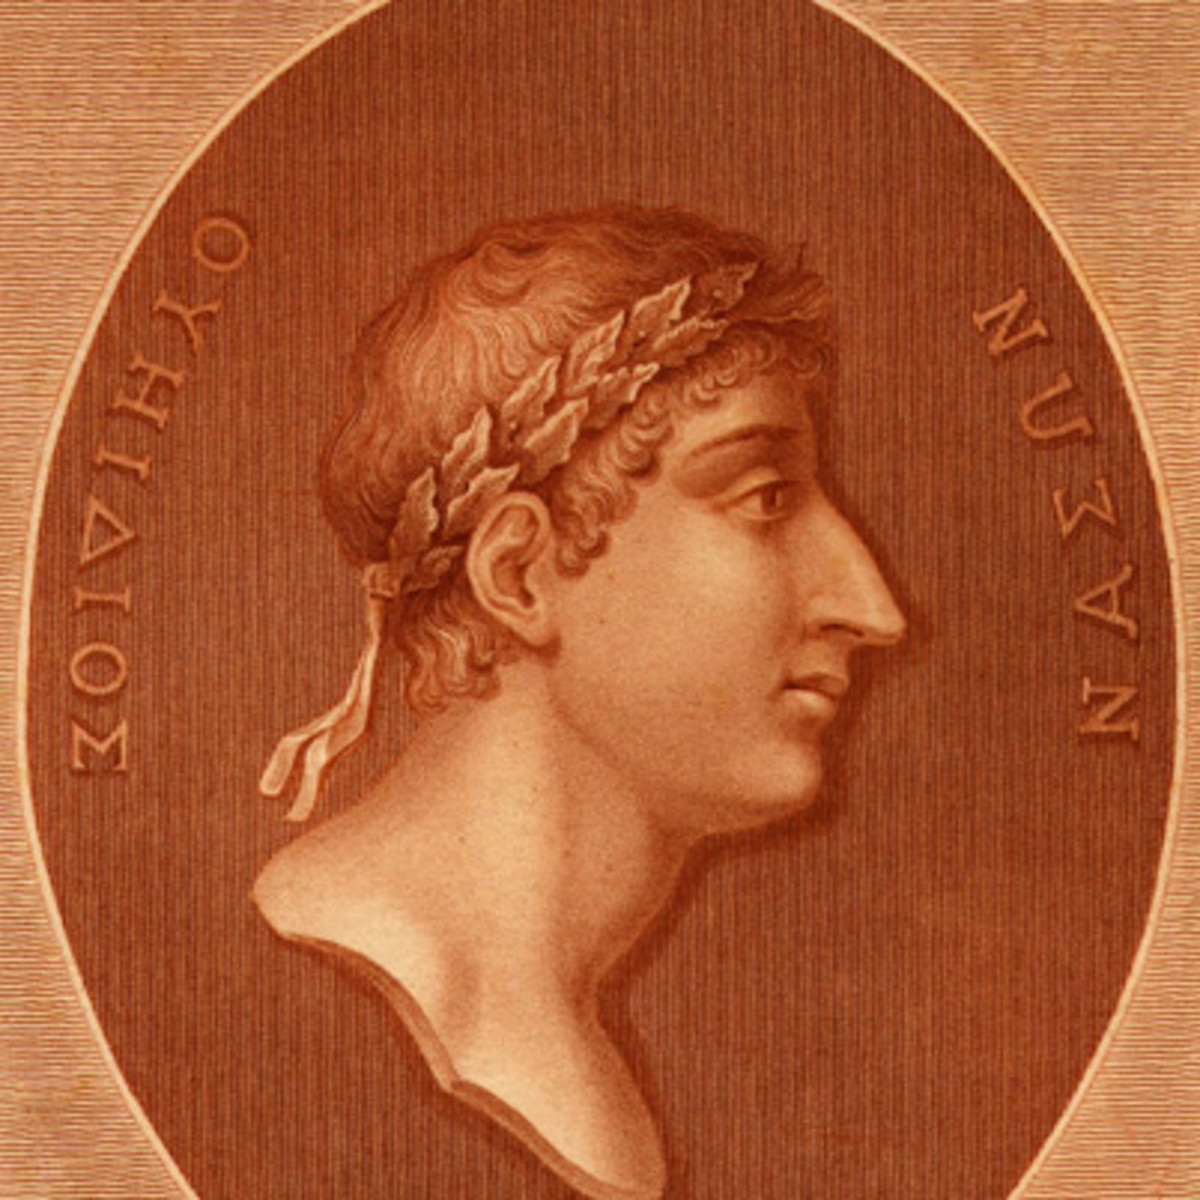 a biography of tacitus a roman writer Tacitus was a roman historian writing early in the 2nd century ad  whose biography he also wrote, and would have had to have had the acquaintance of some of the.